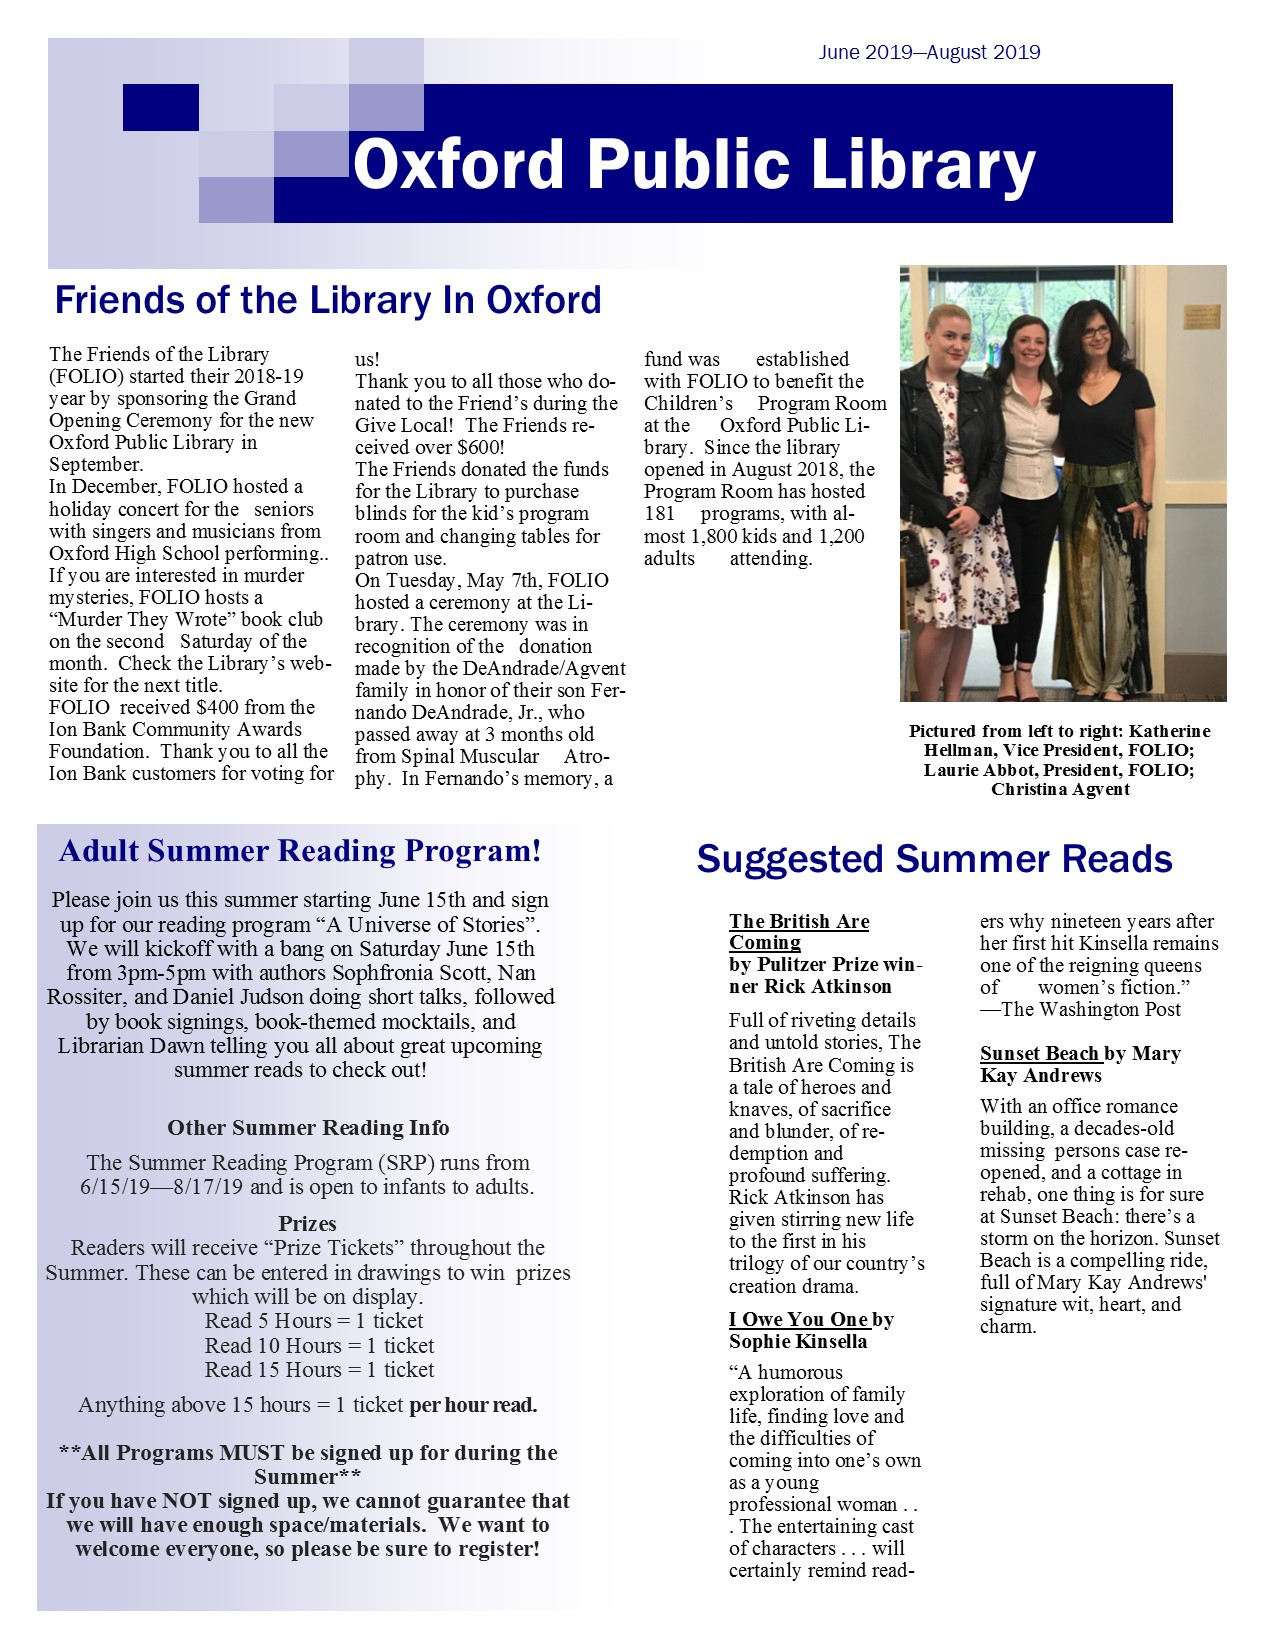 June to August 2019 Newsletter